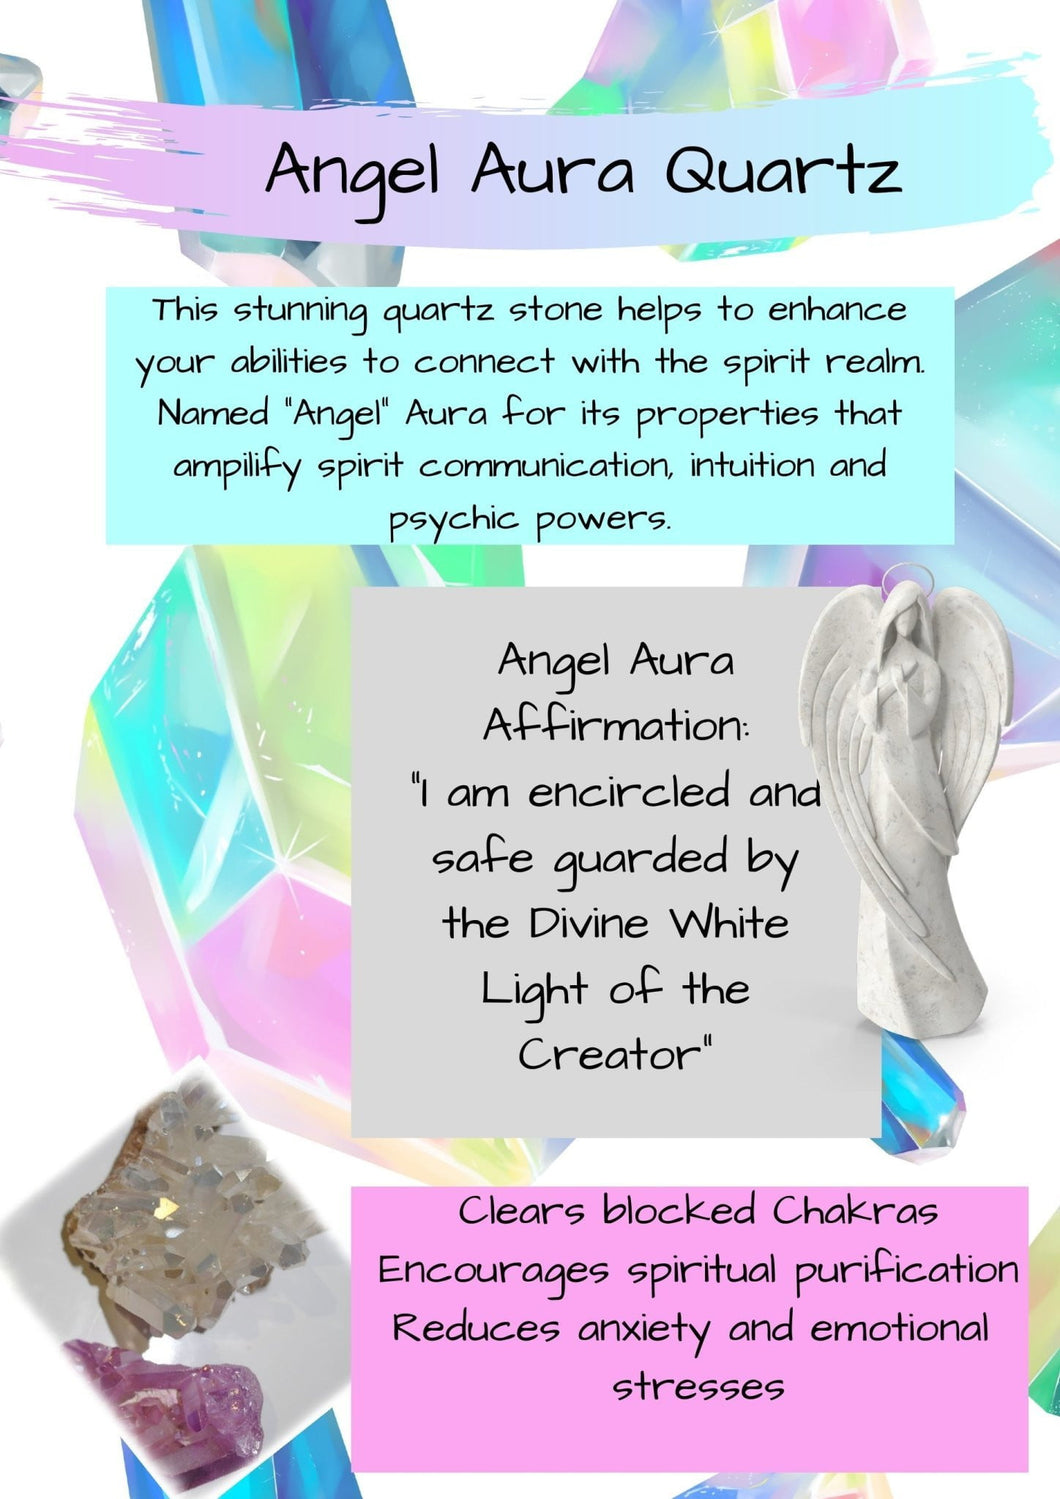 Book of Shadows: Angel Aura Quartz Crystal - Black Cat Coven Couture